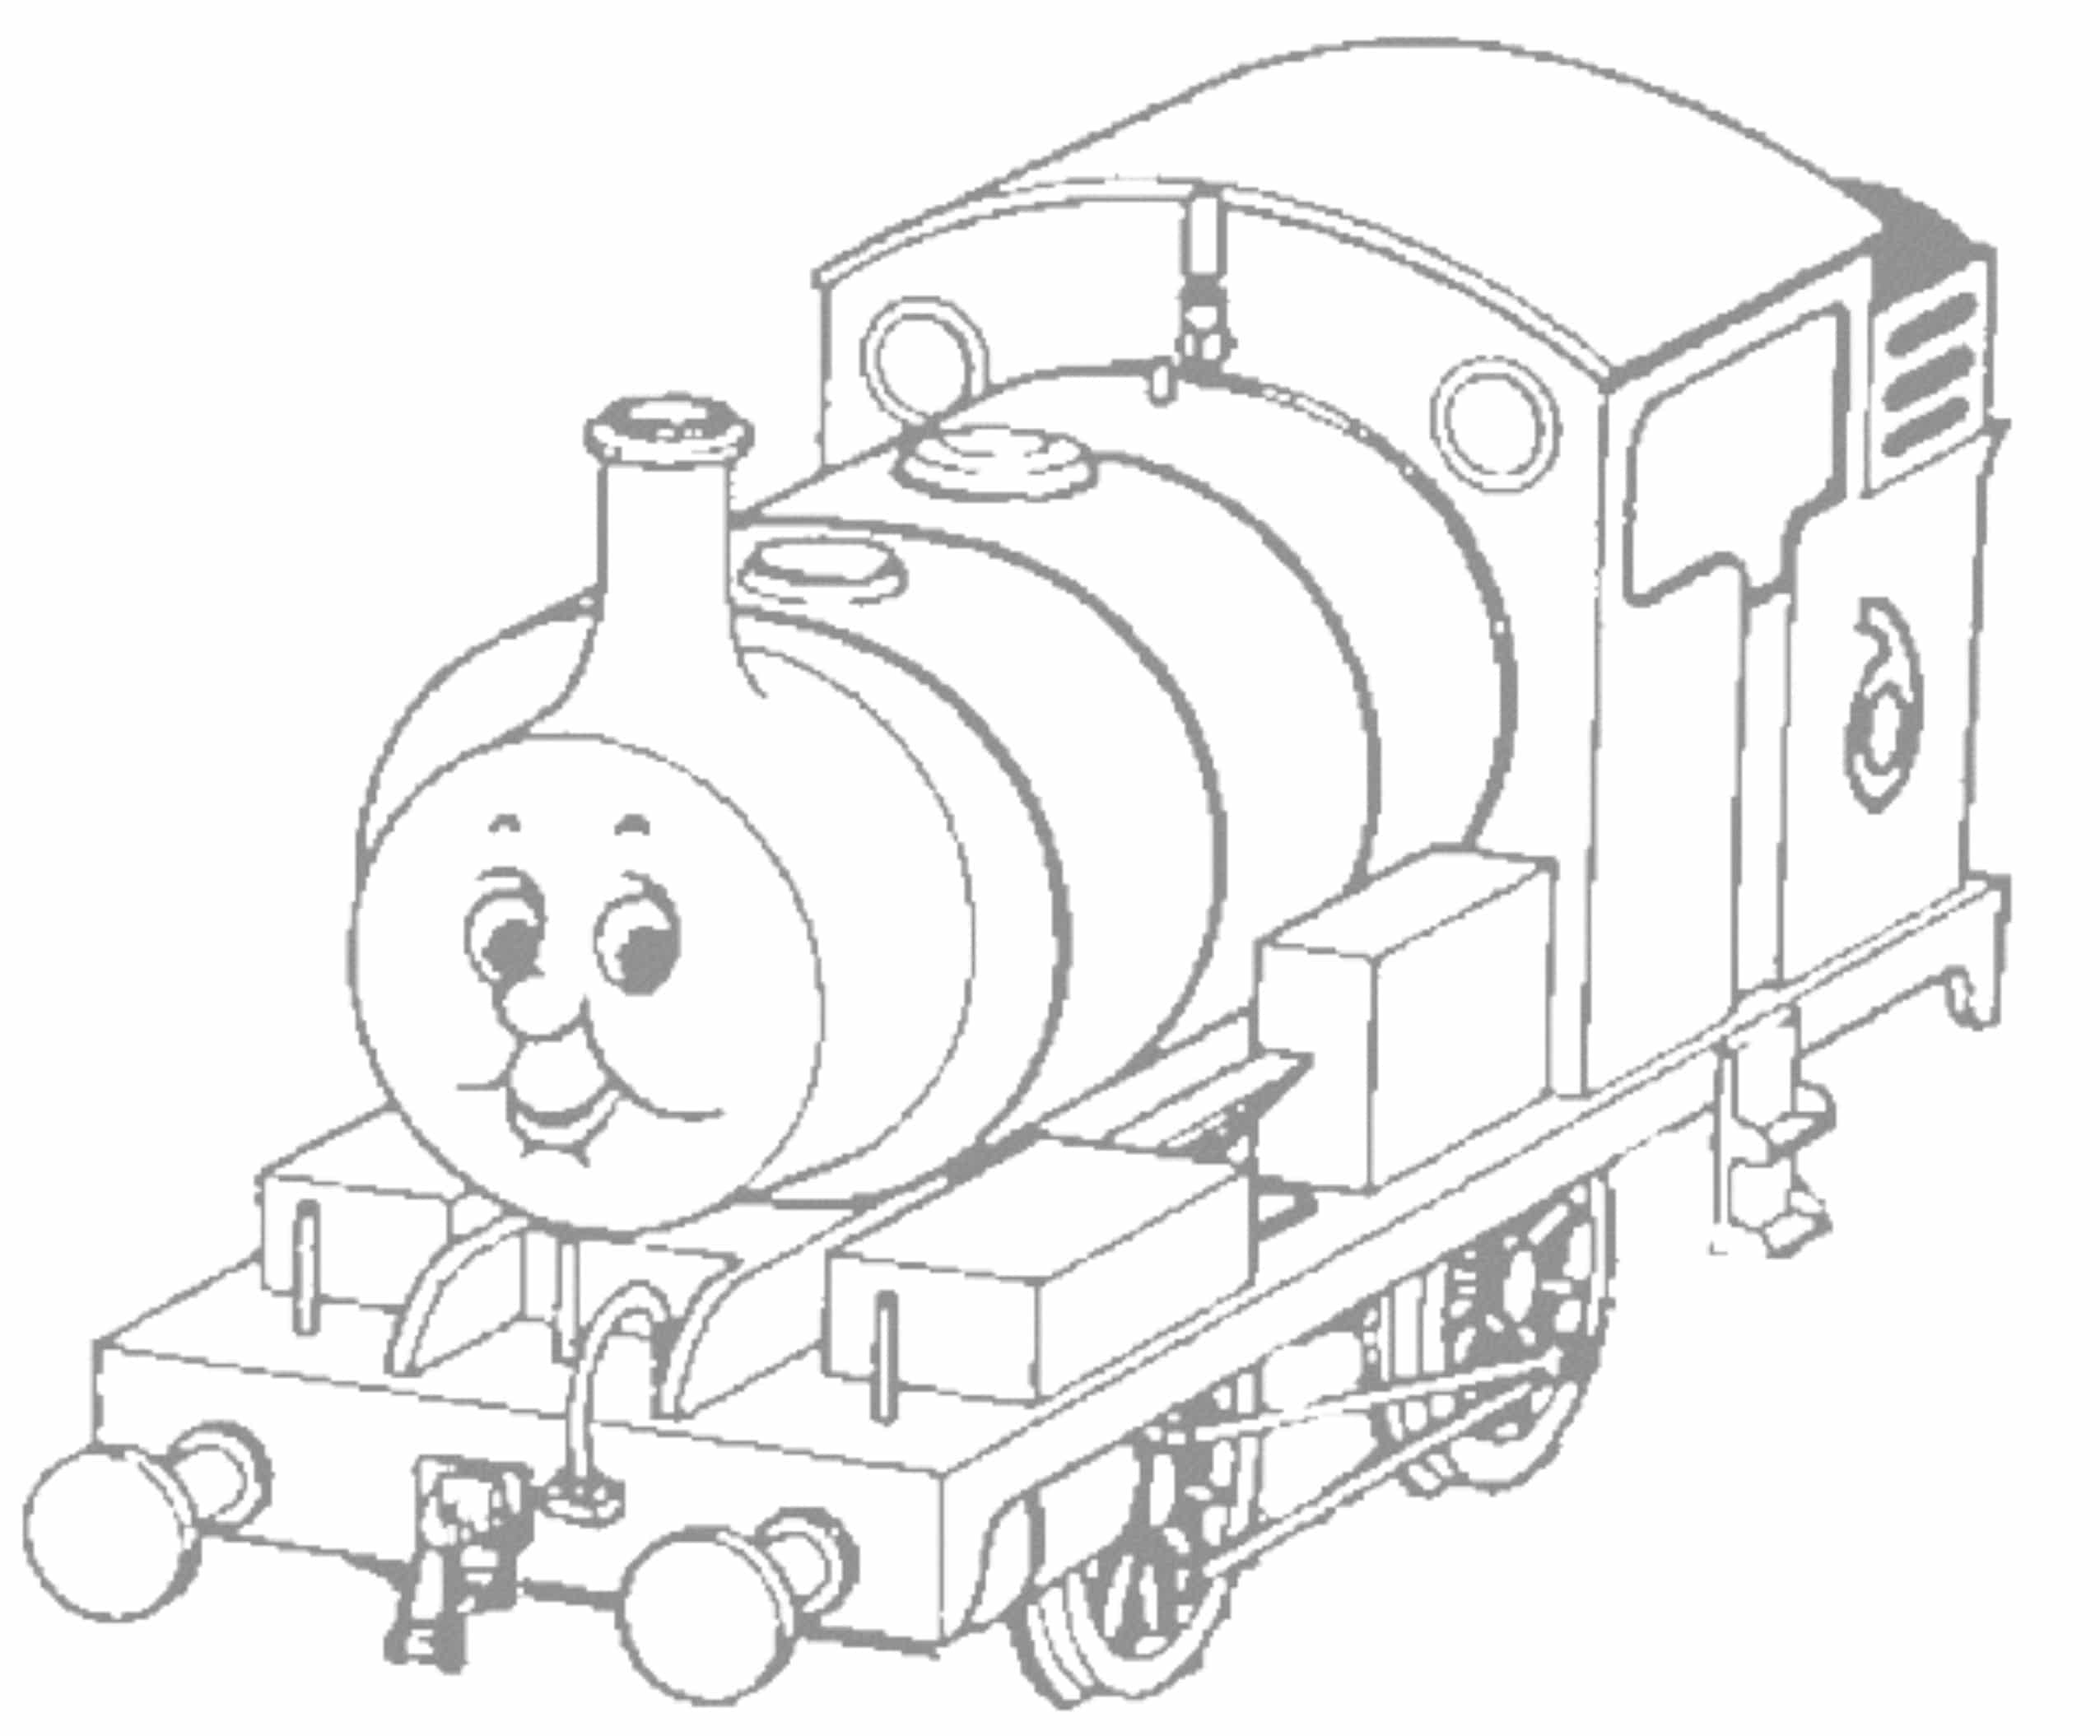 trains coloring pages free printable train coloring pages for kids cool2bkids trains pages coloring